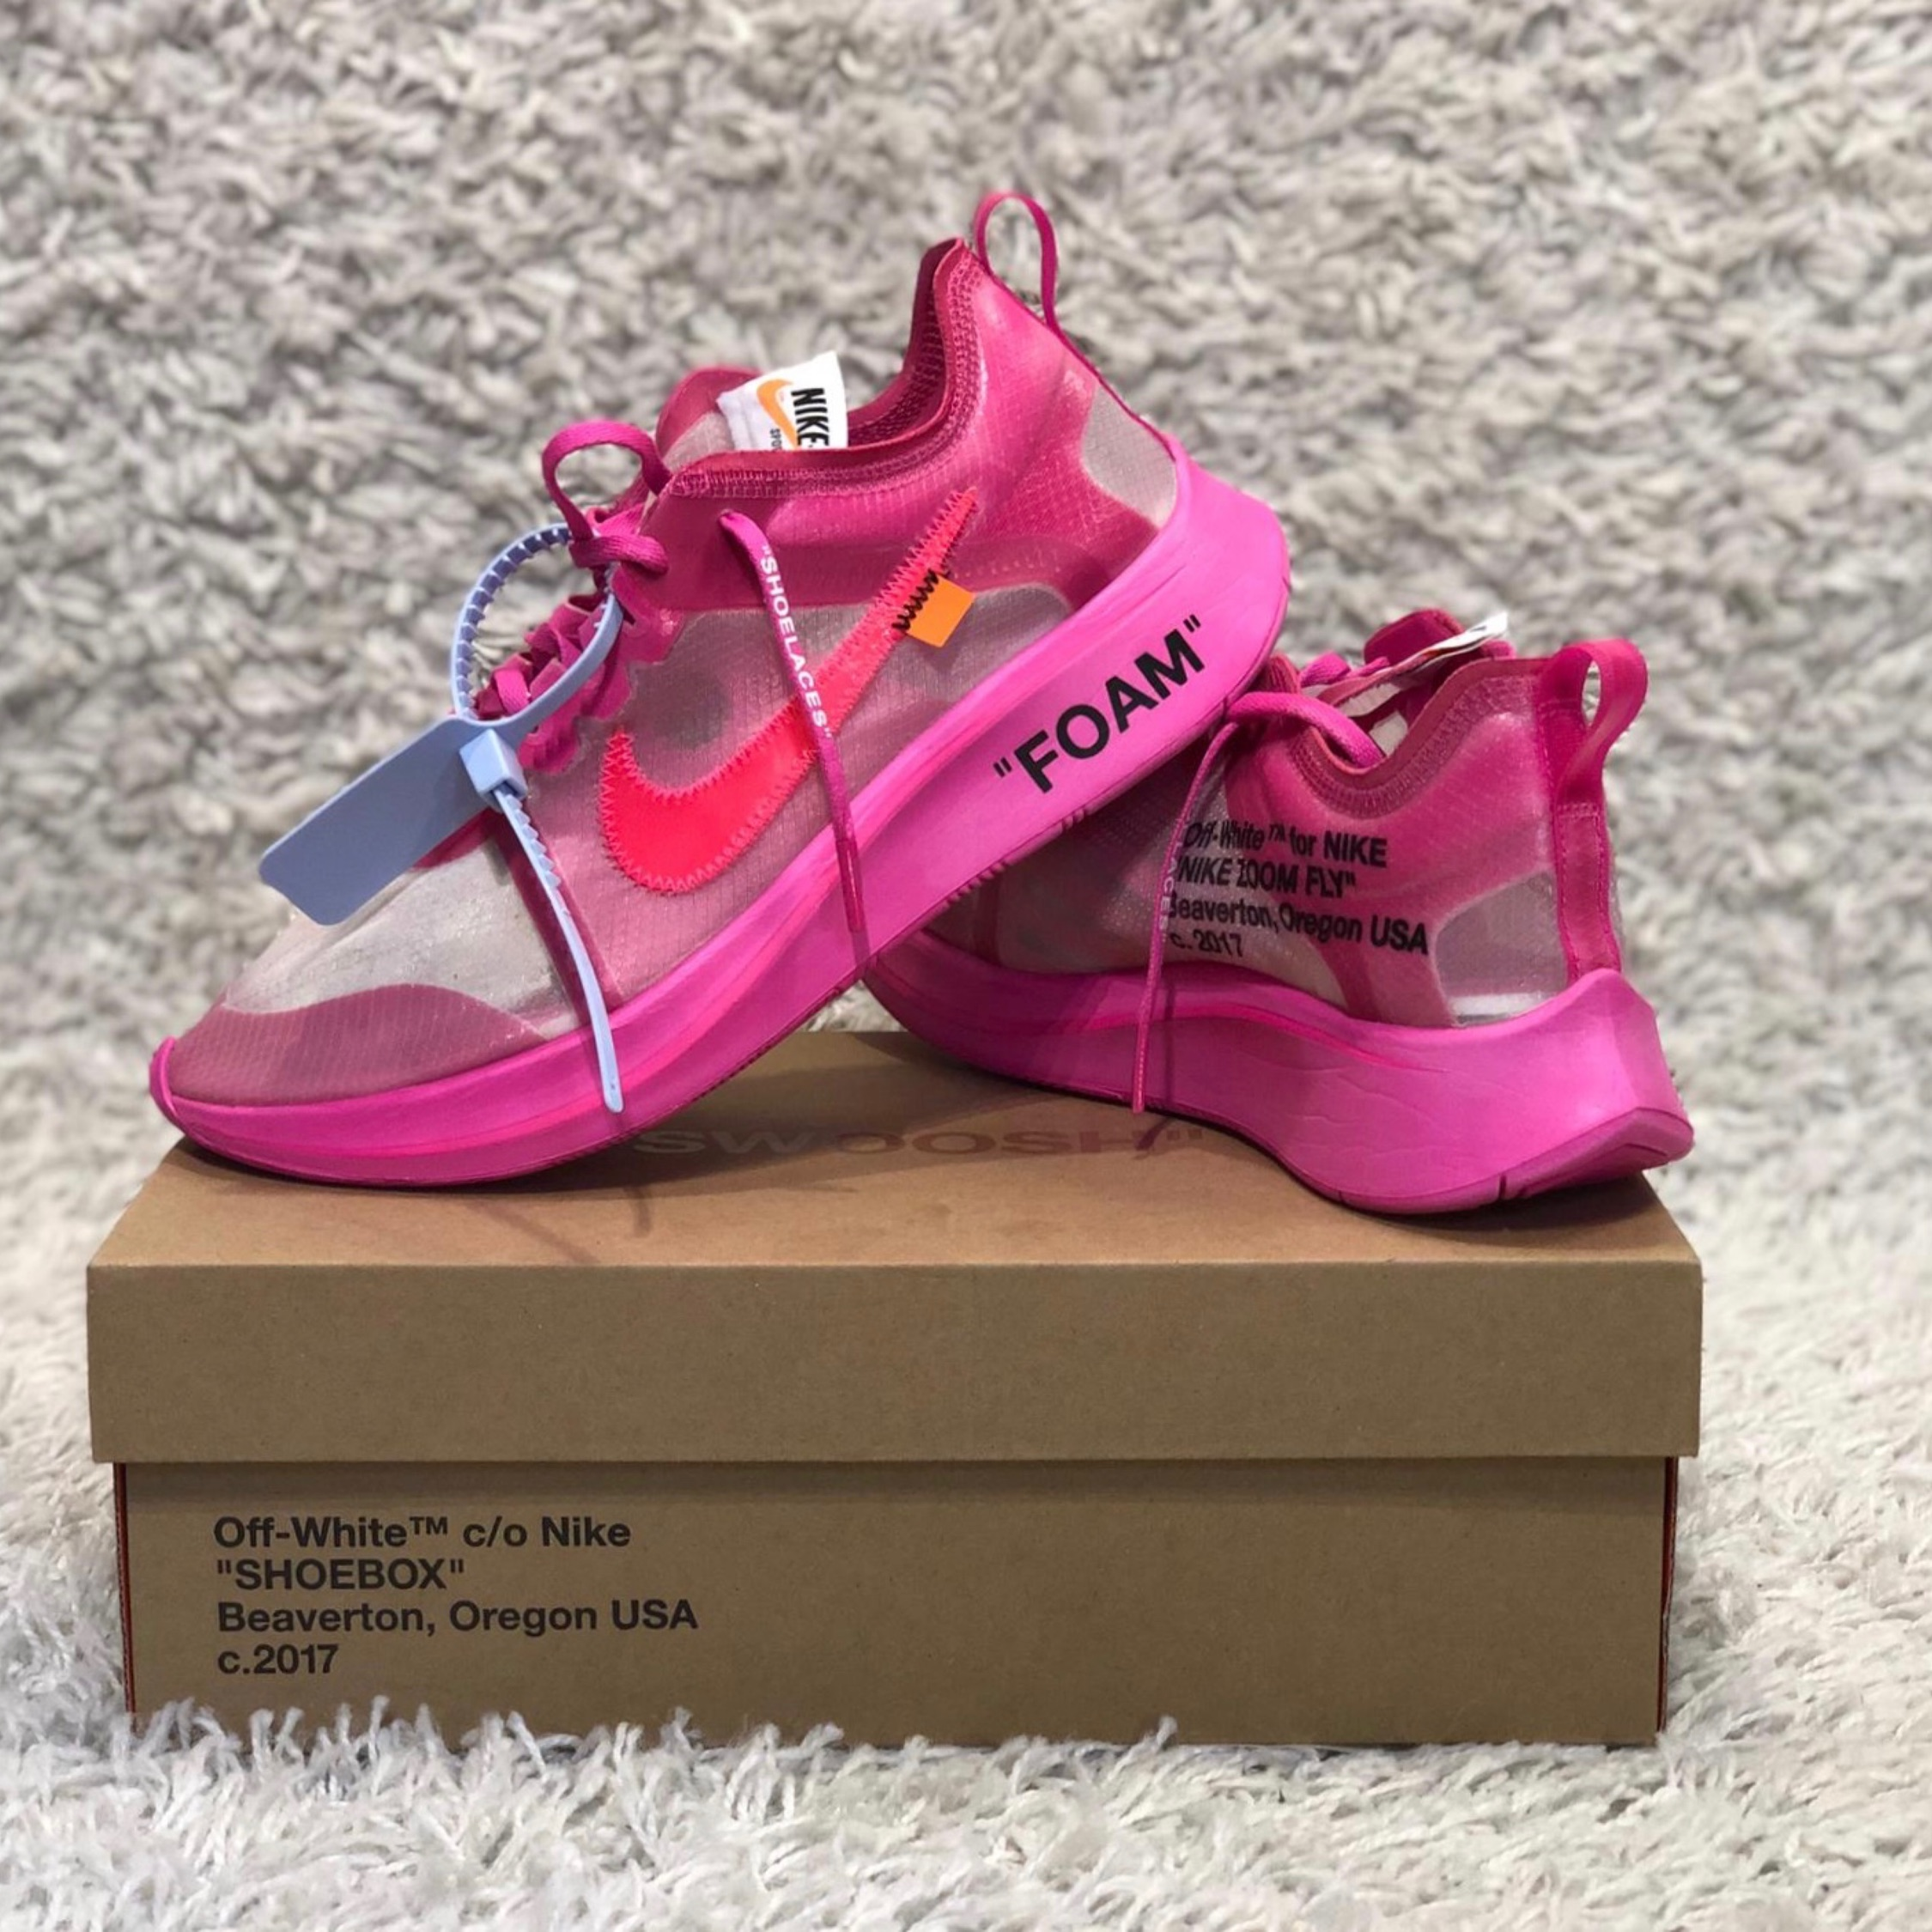 Nike X Offwhite Zoom Fly Pink